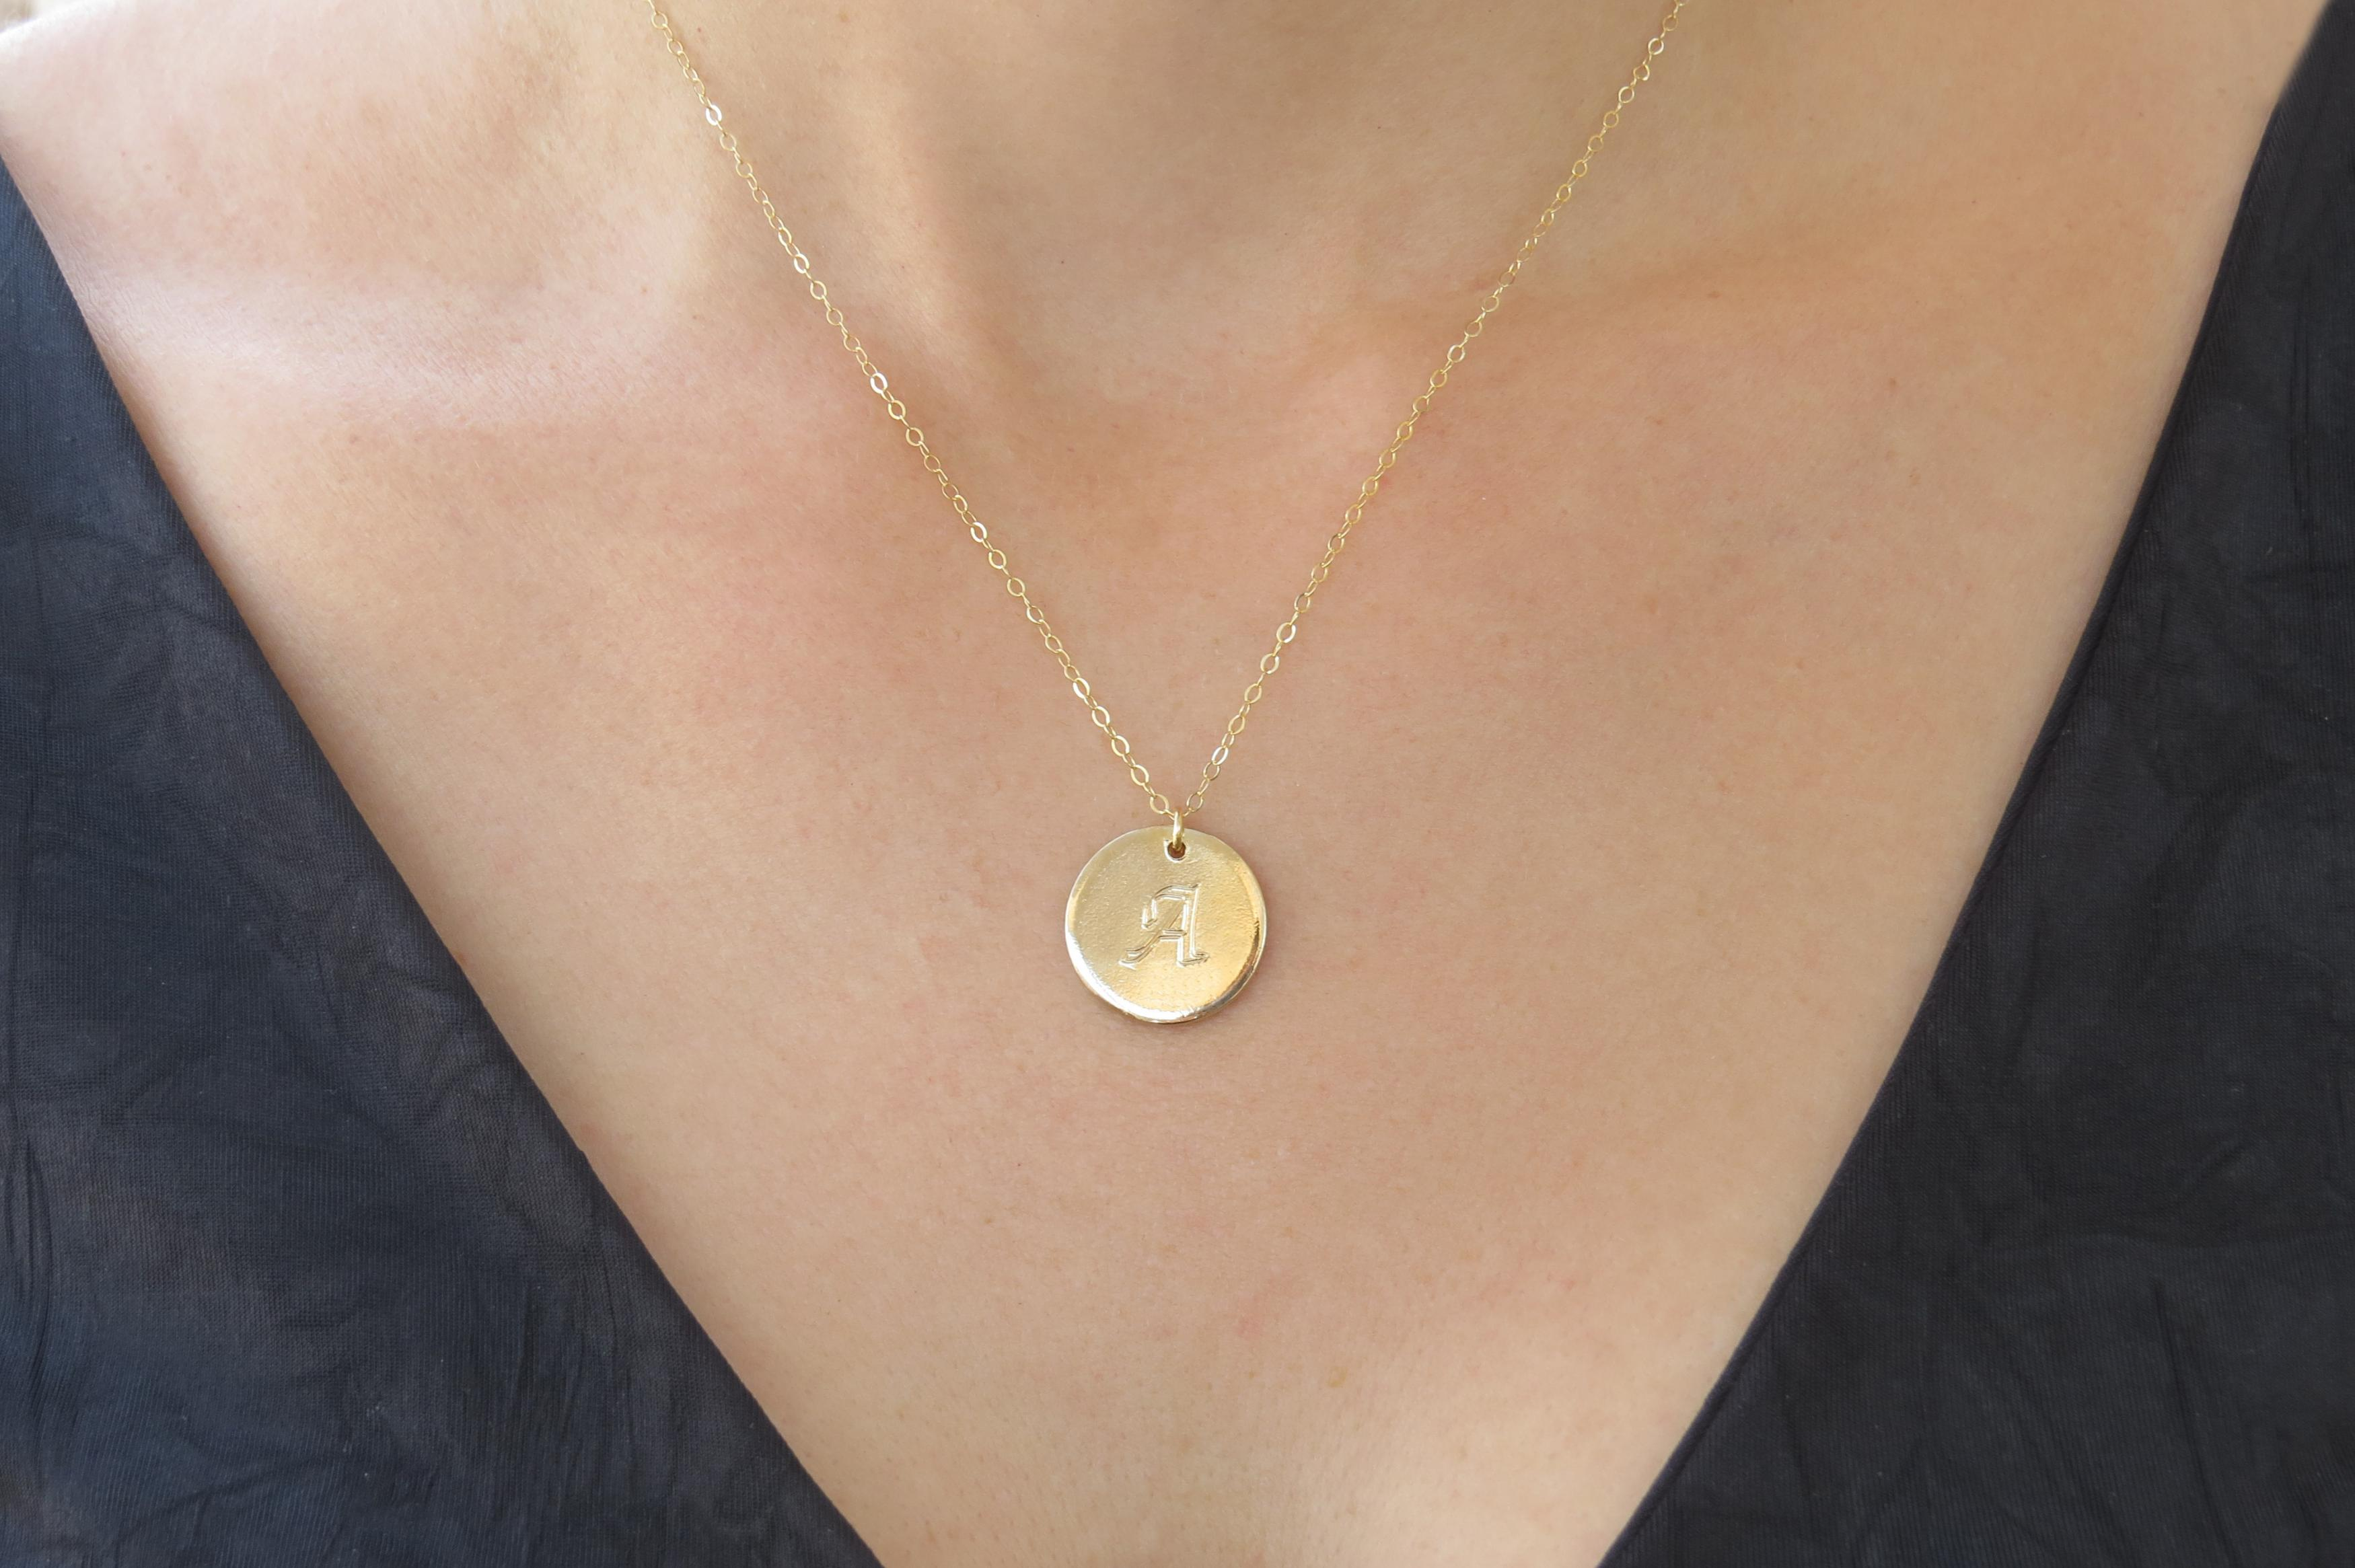 necklace handmade personalized gold crescent jewelry g moon pendant